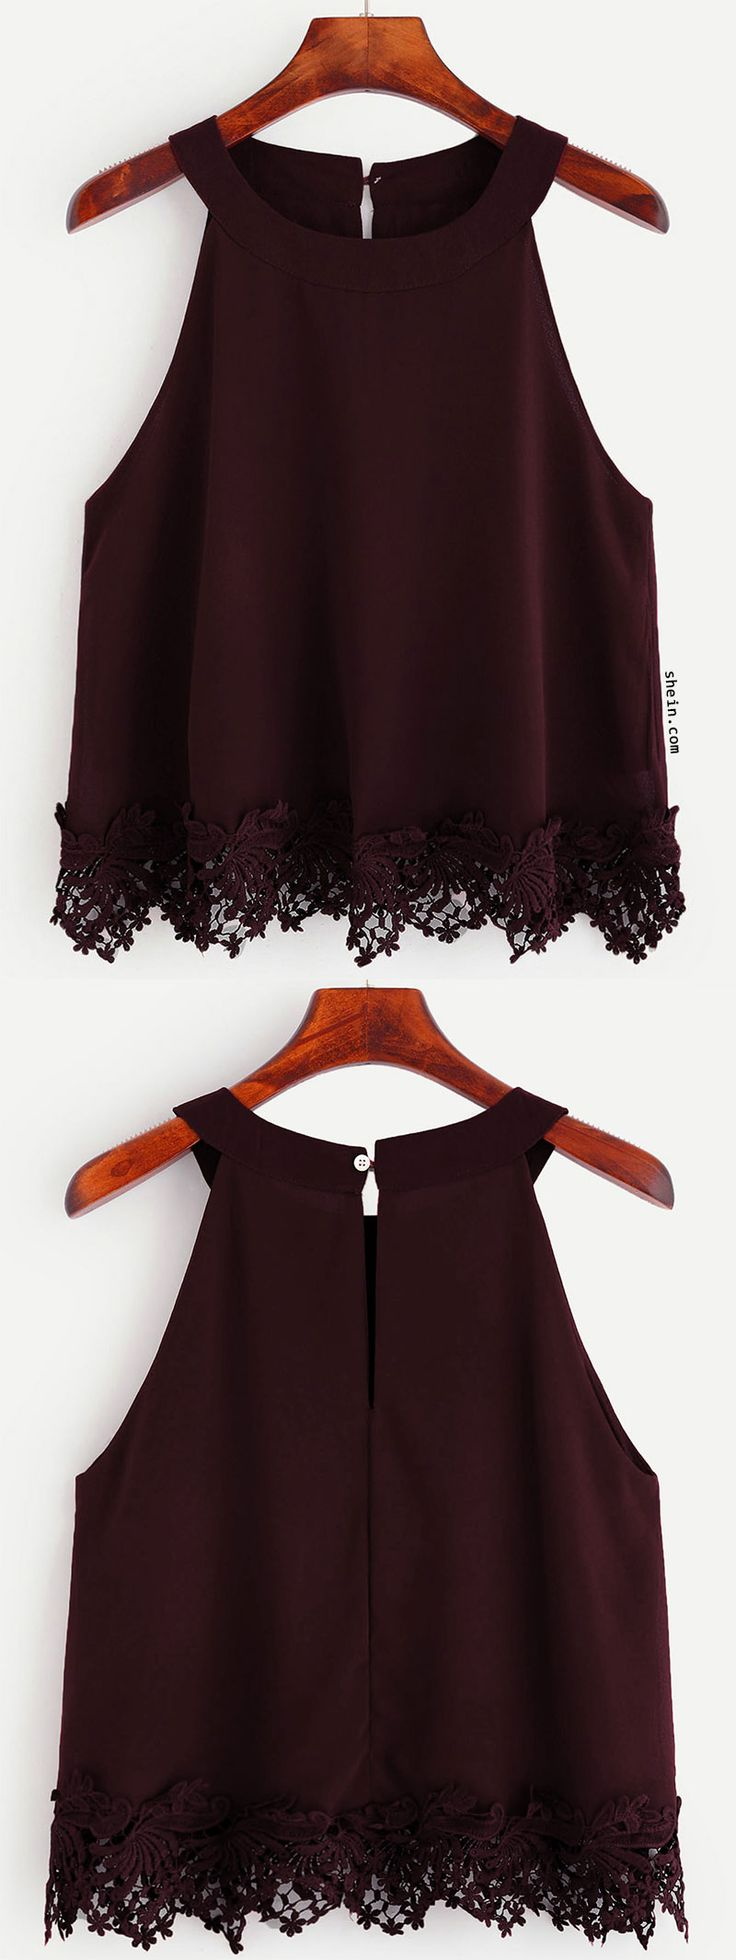 Burgundy Crochet Trim Chiffon Halter Neck Top, this is só girly and so cute i realy like it